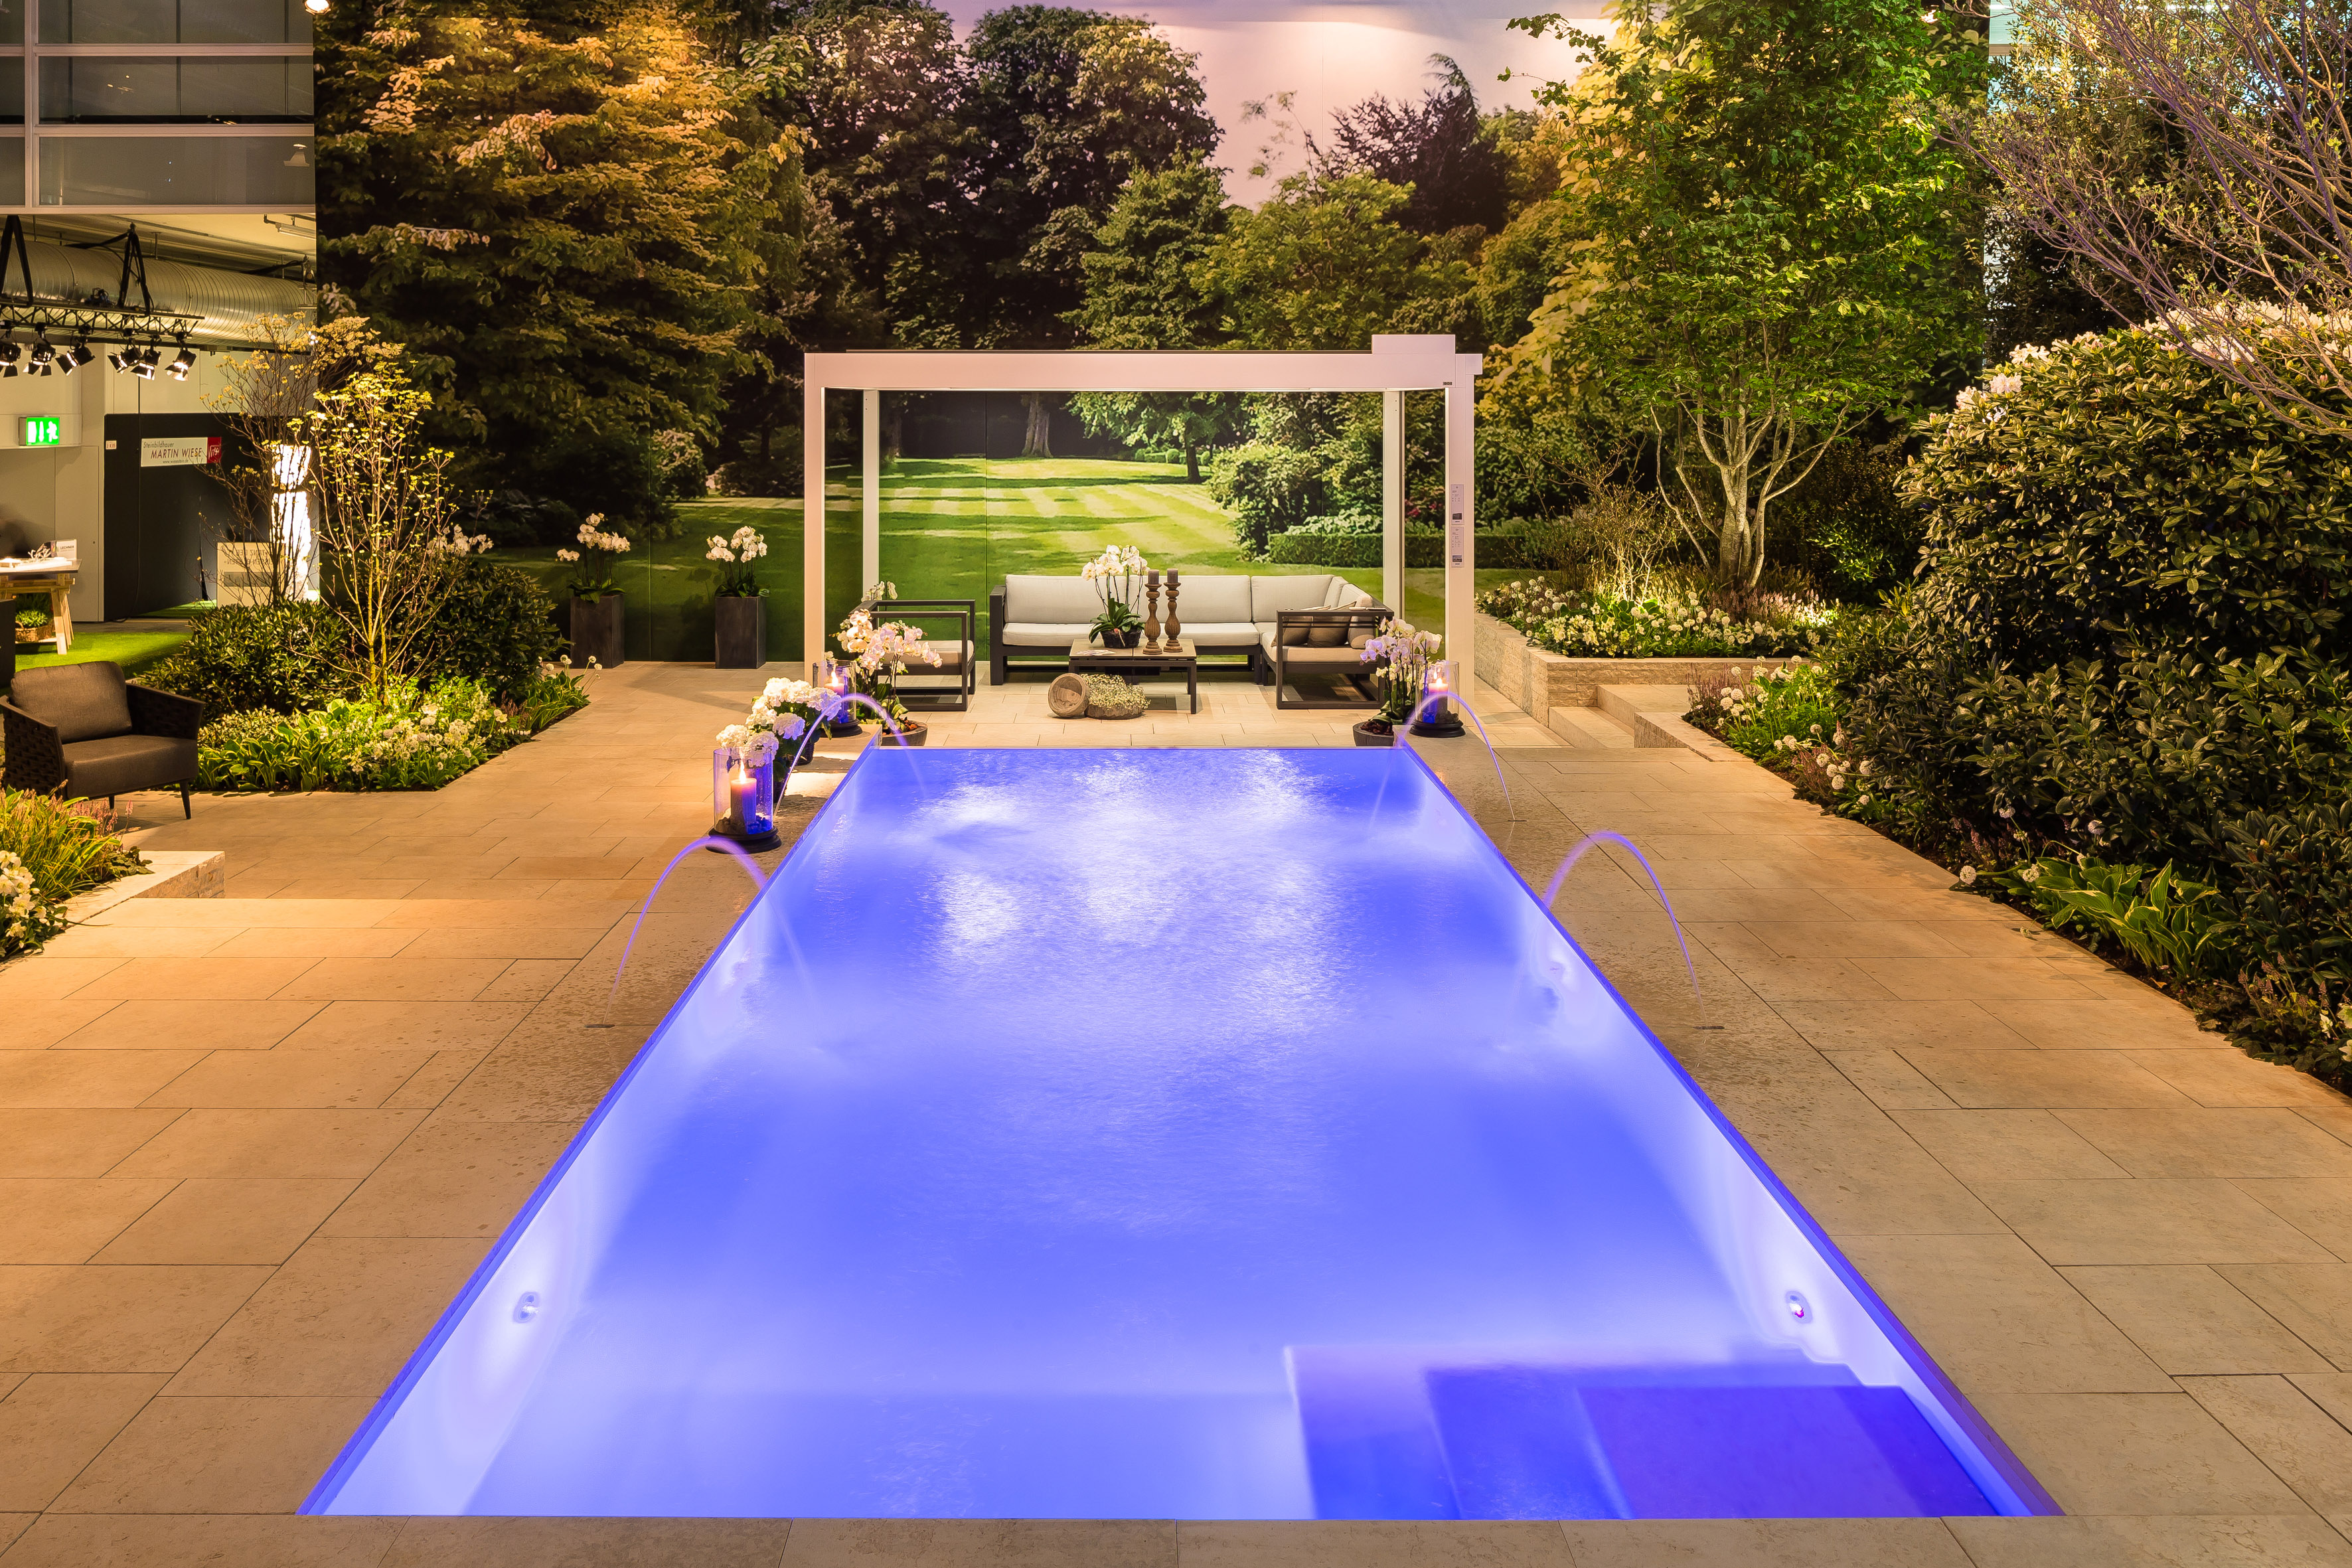 Pool Garten Hoch Gardens Up To 200m2 Giardina 11 To 15 March 2020